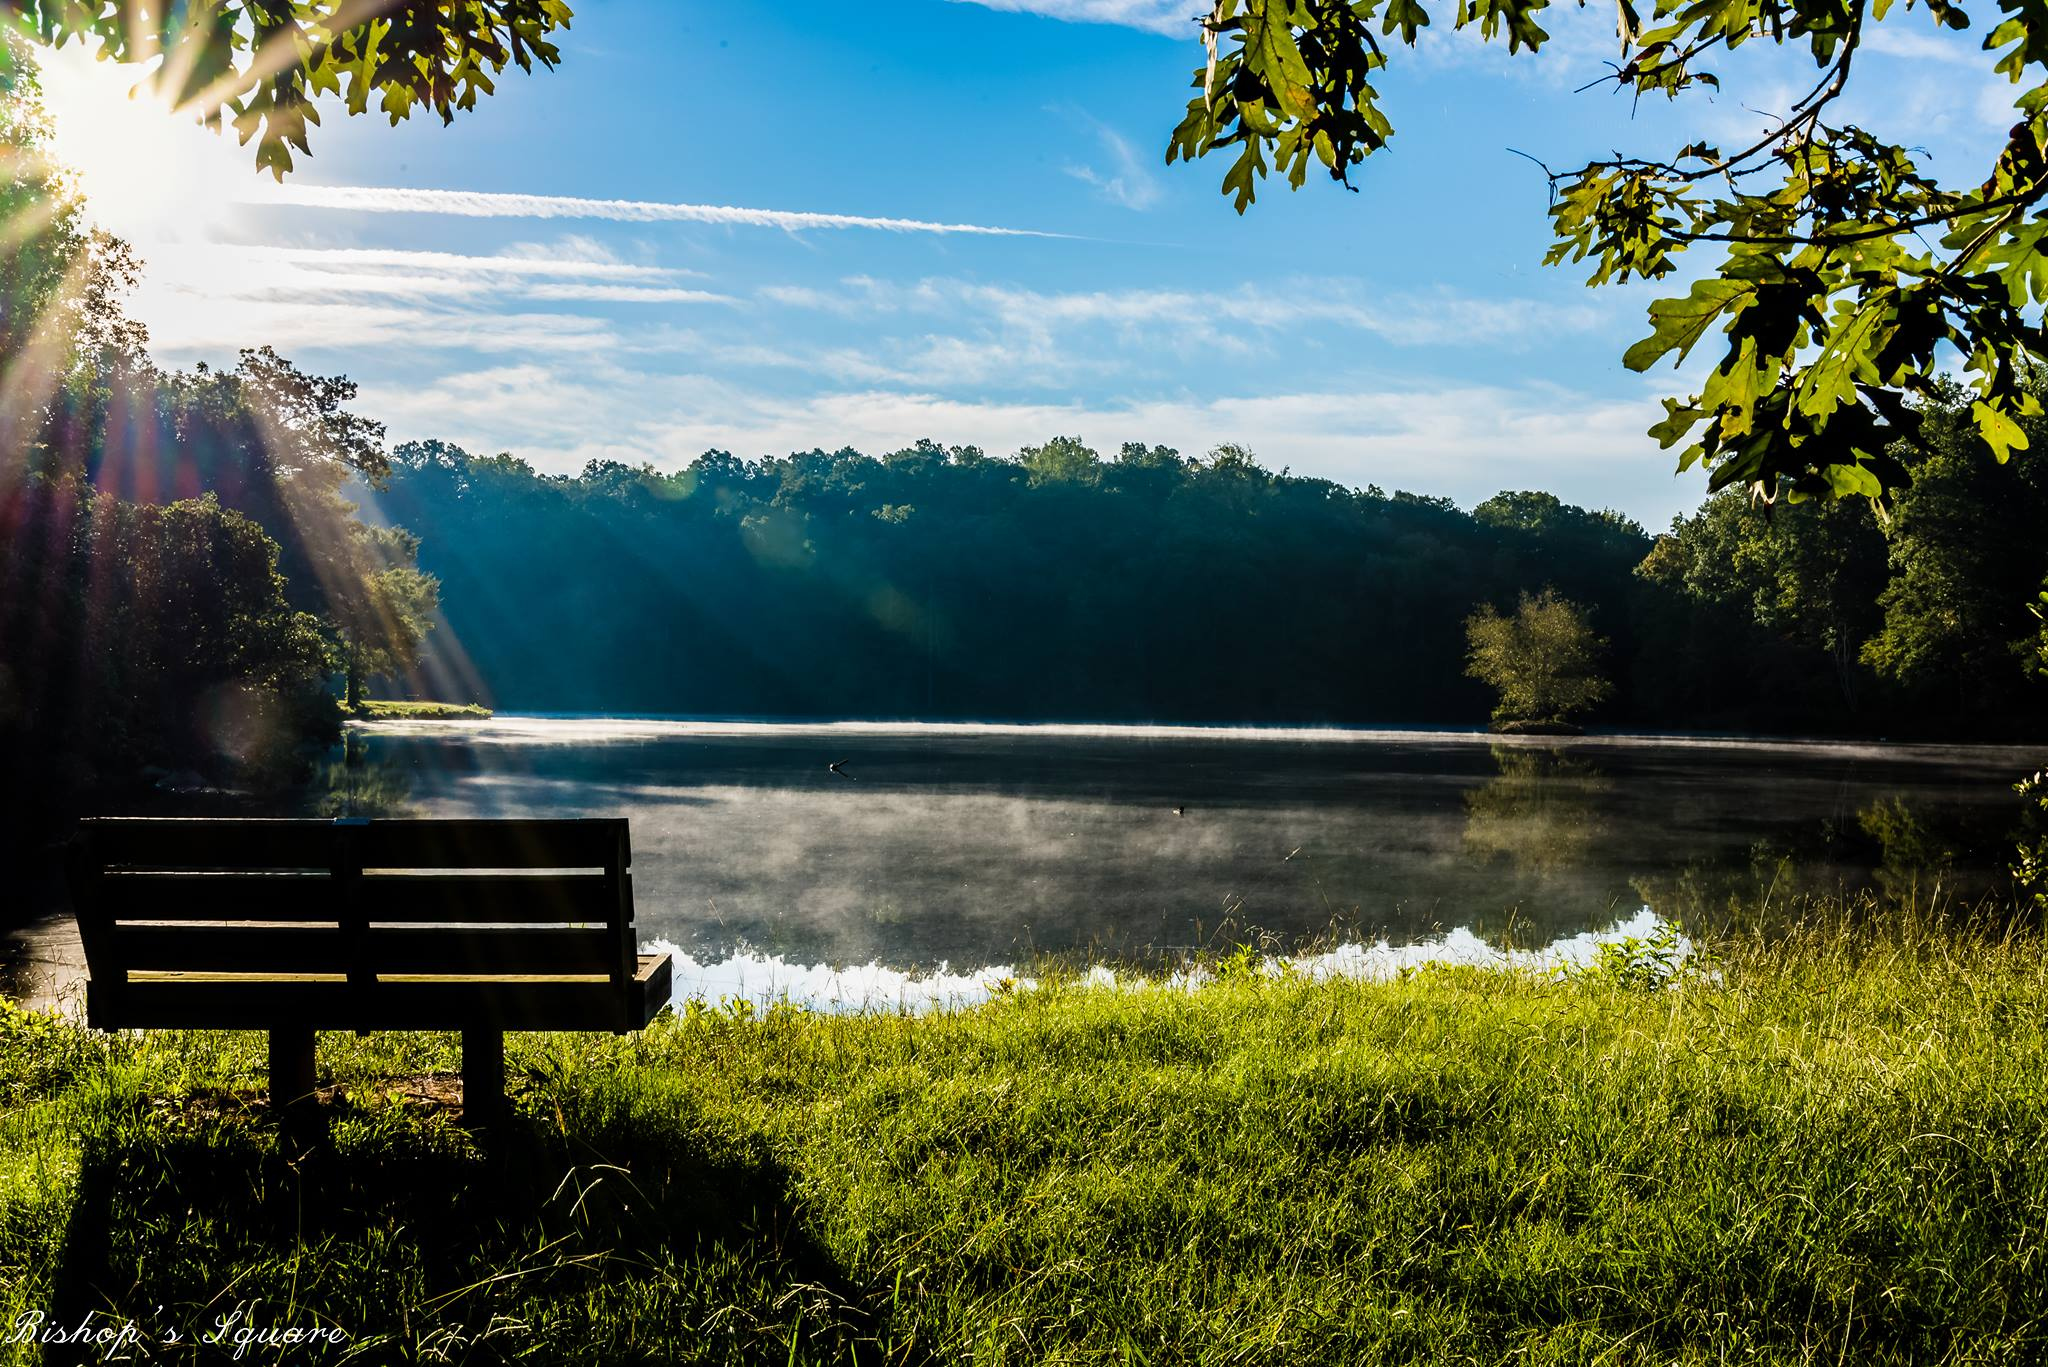 Bench by a tranquil lake